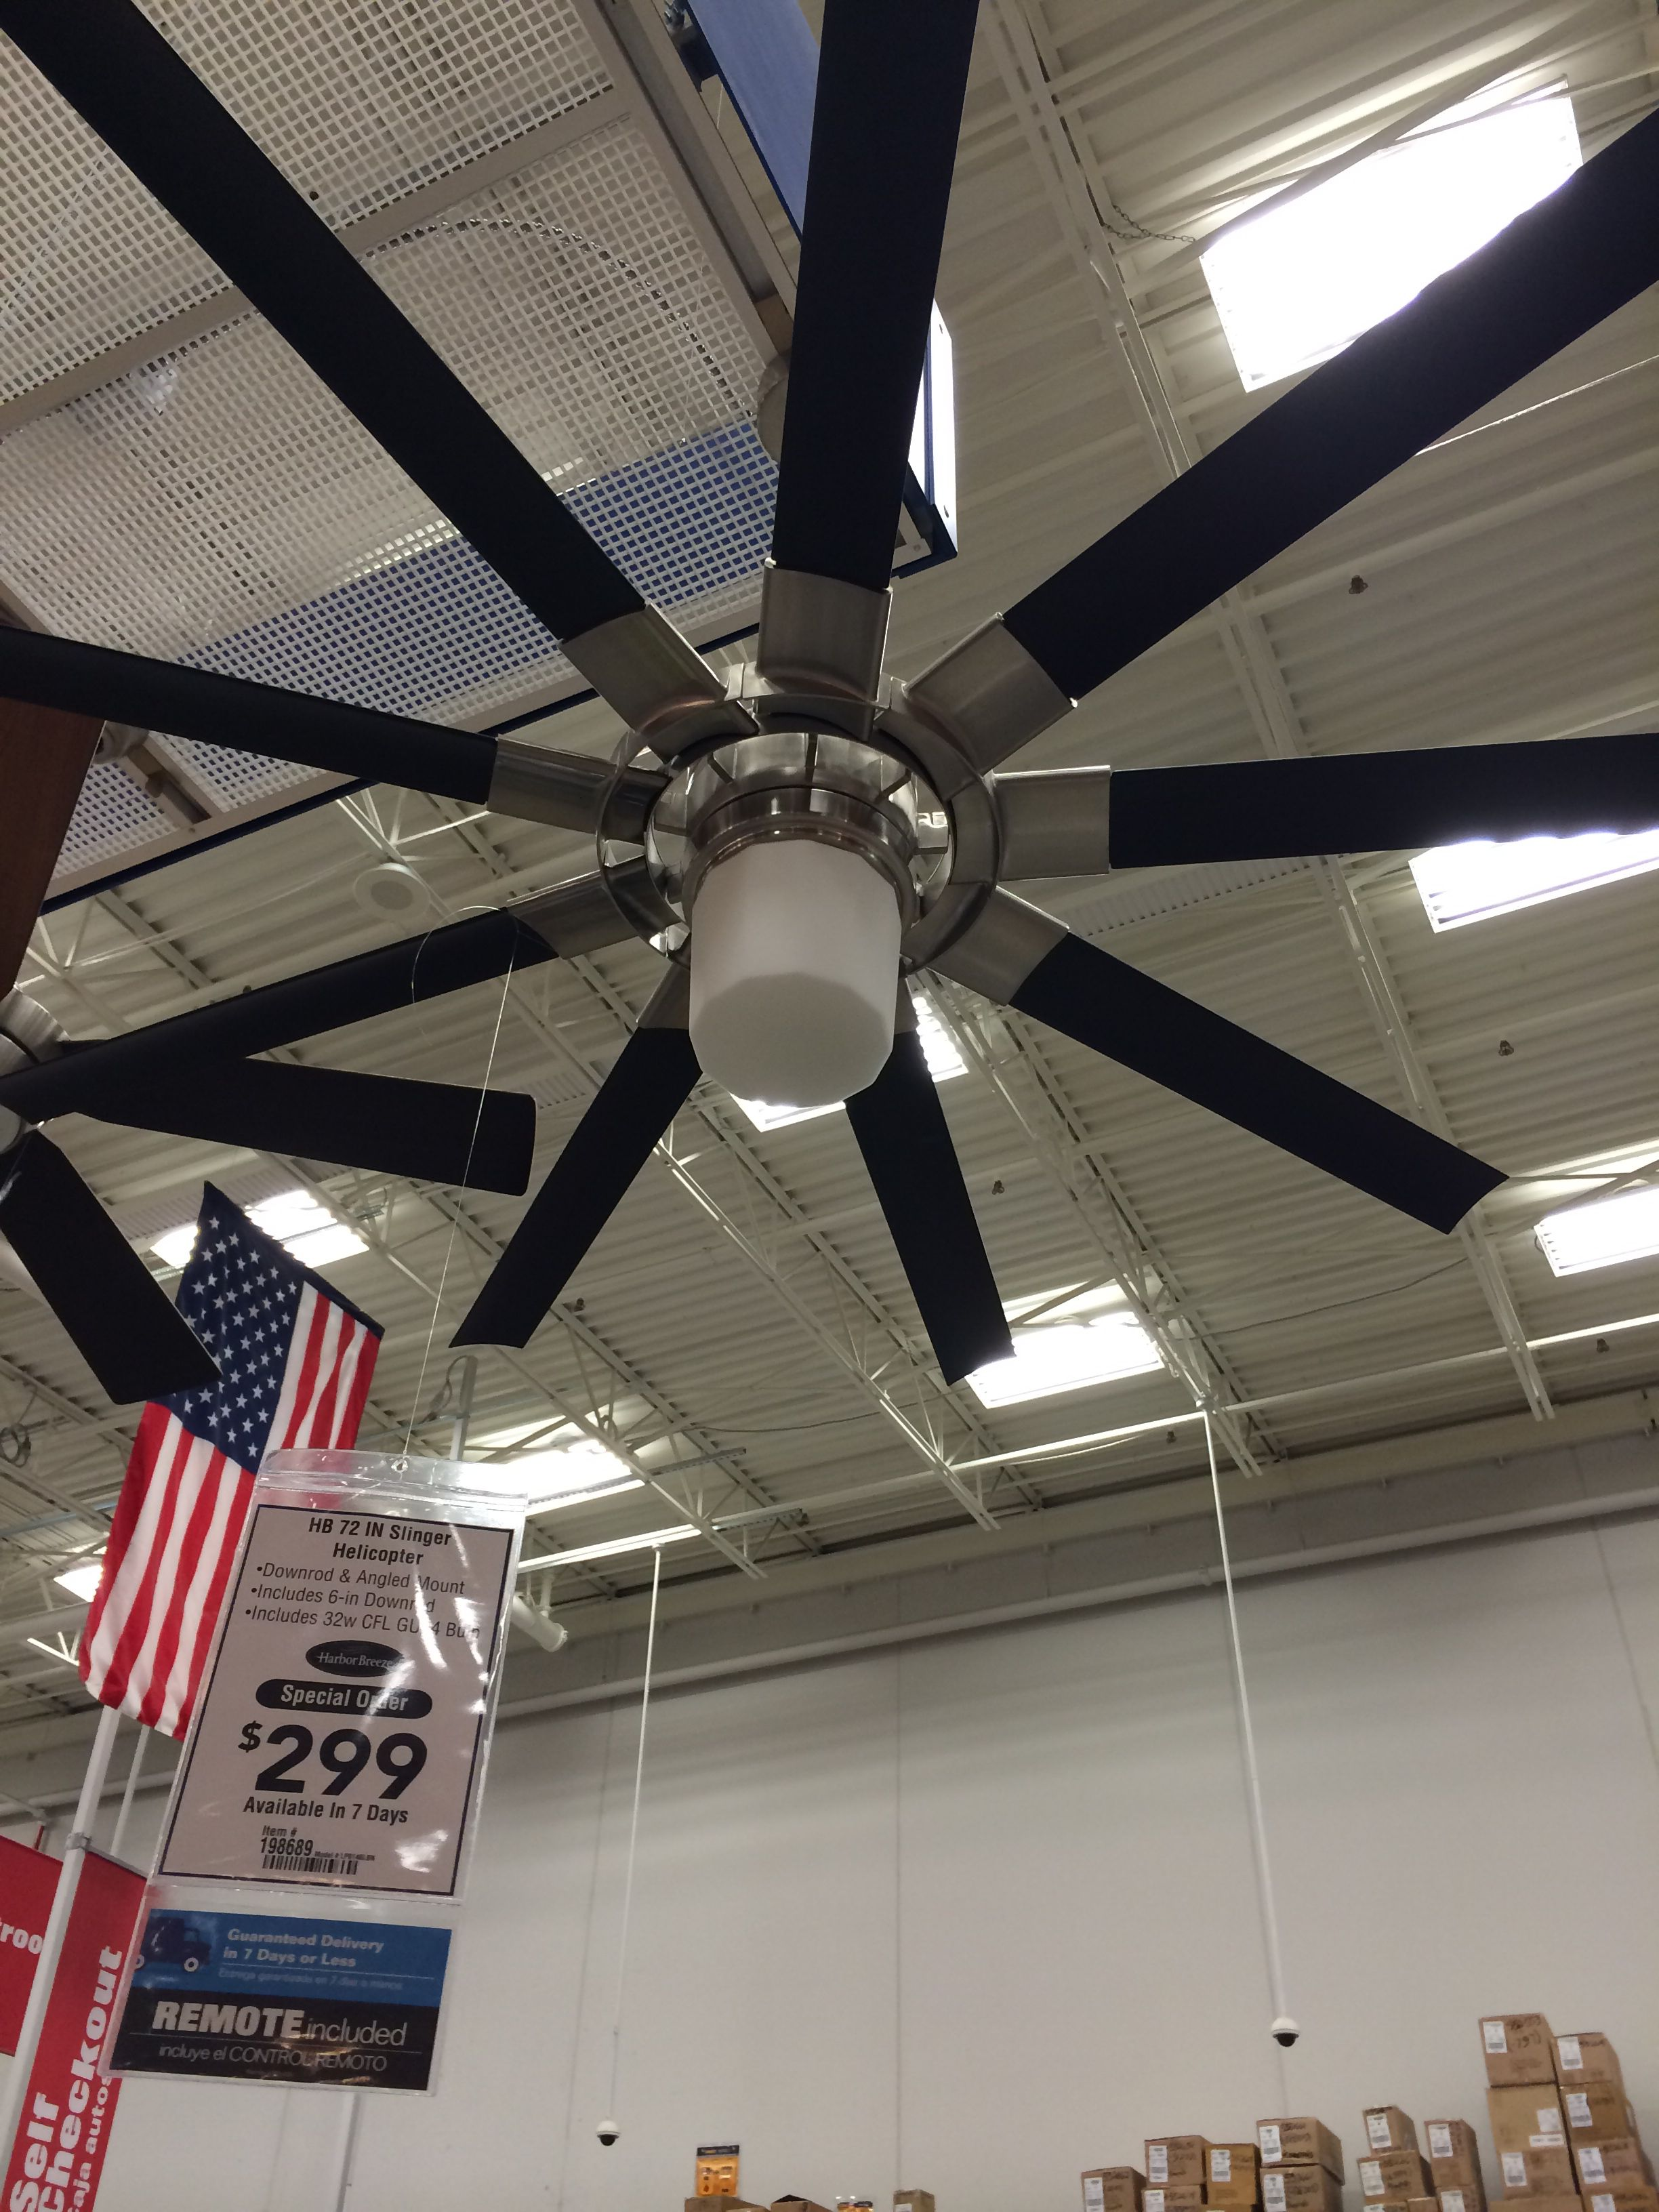 Helicopter fan from Lowes BEDROOM loft plans